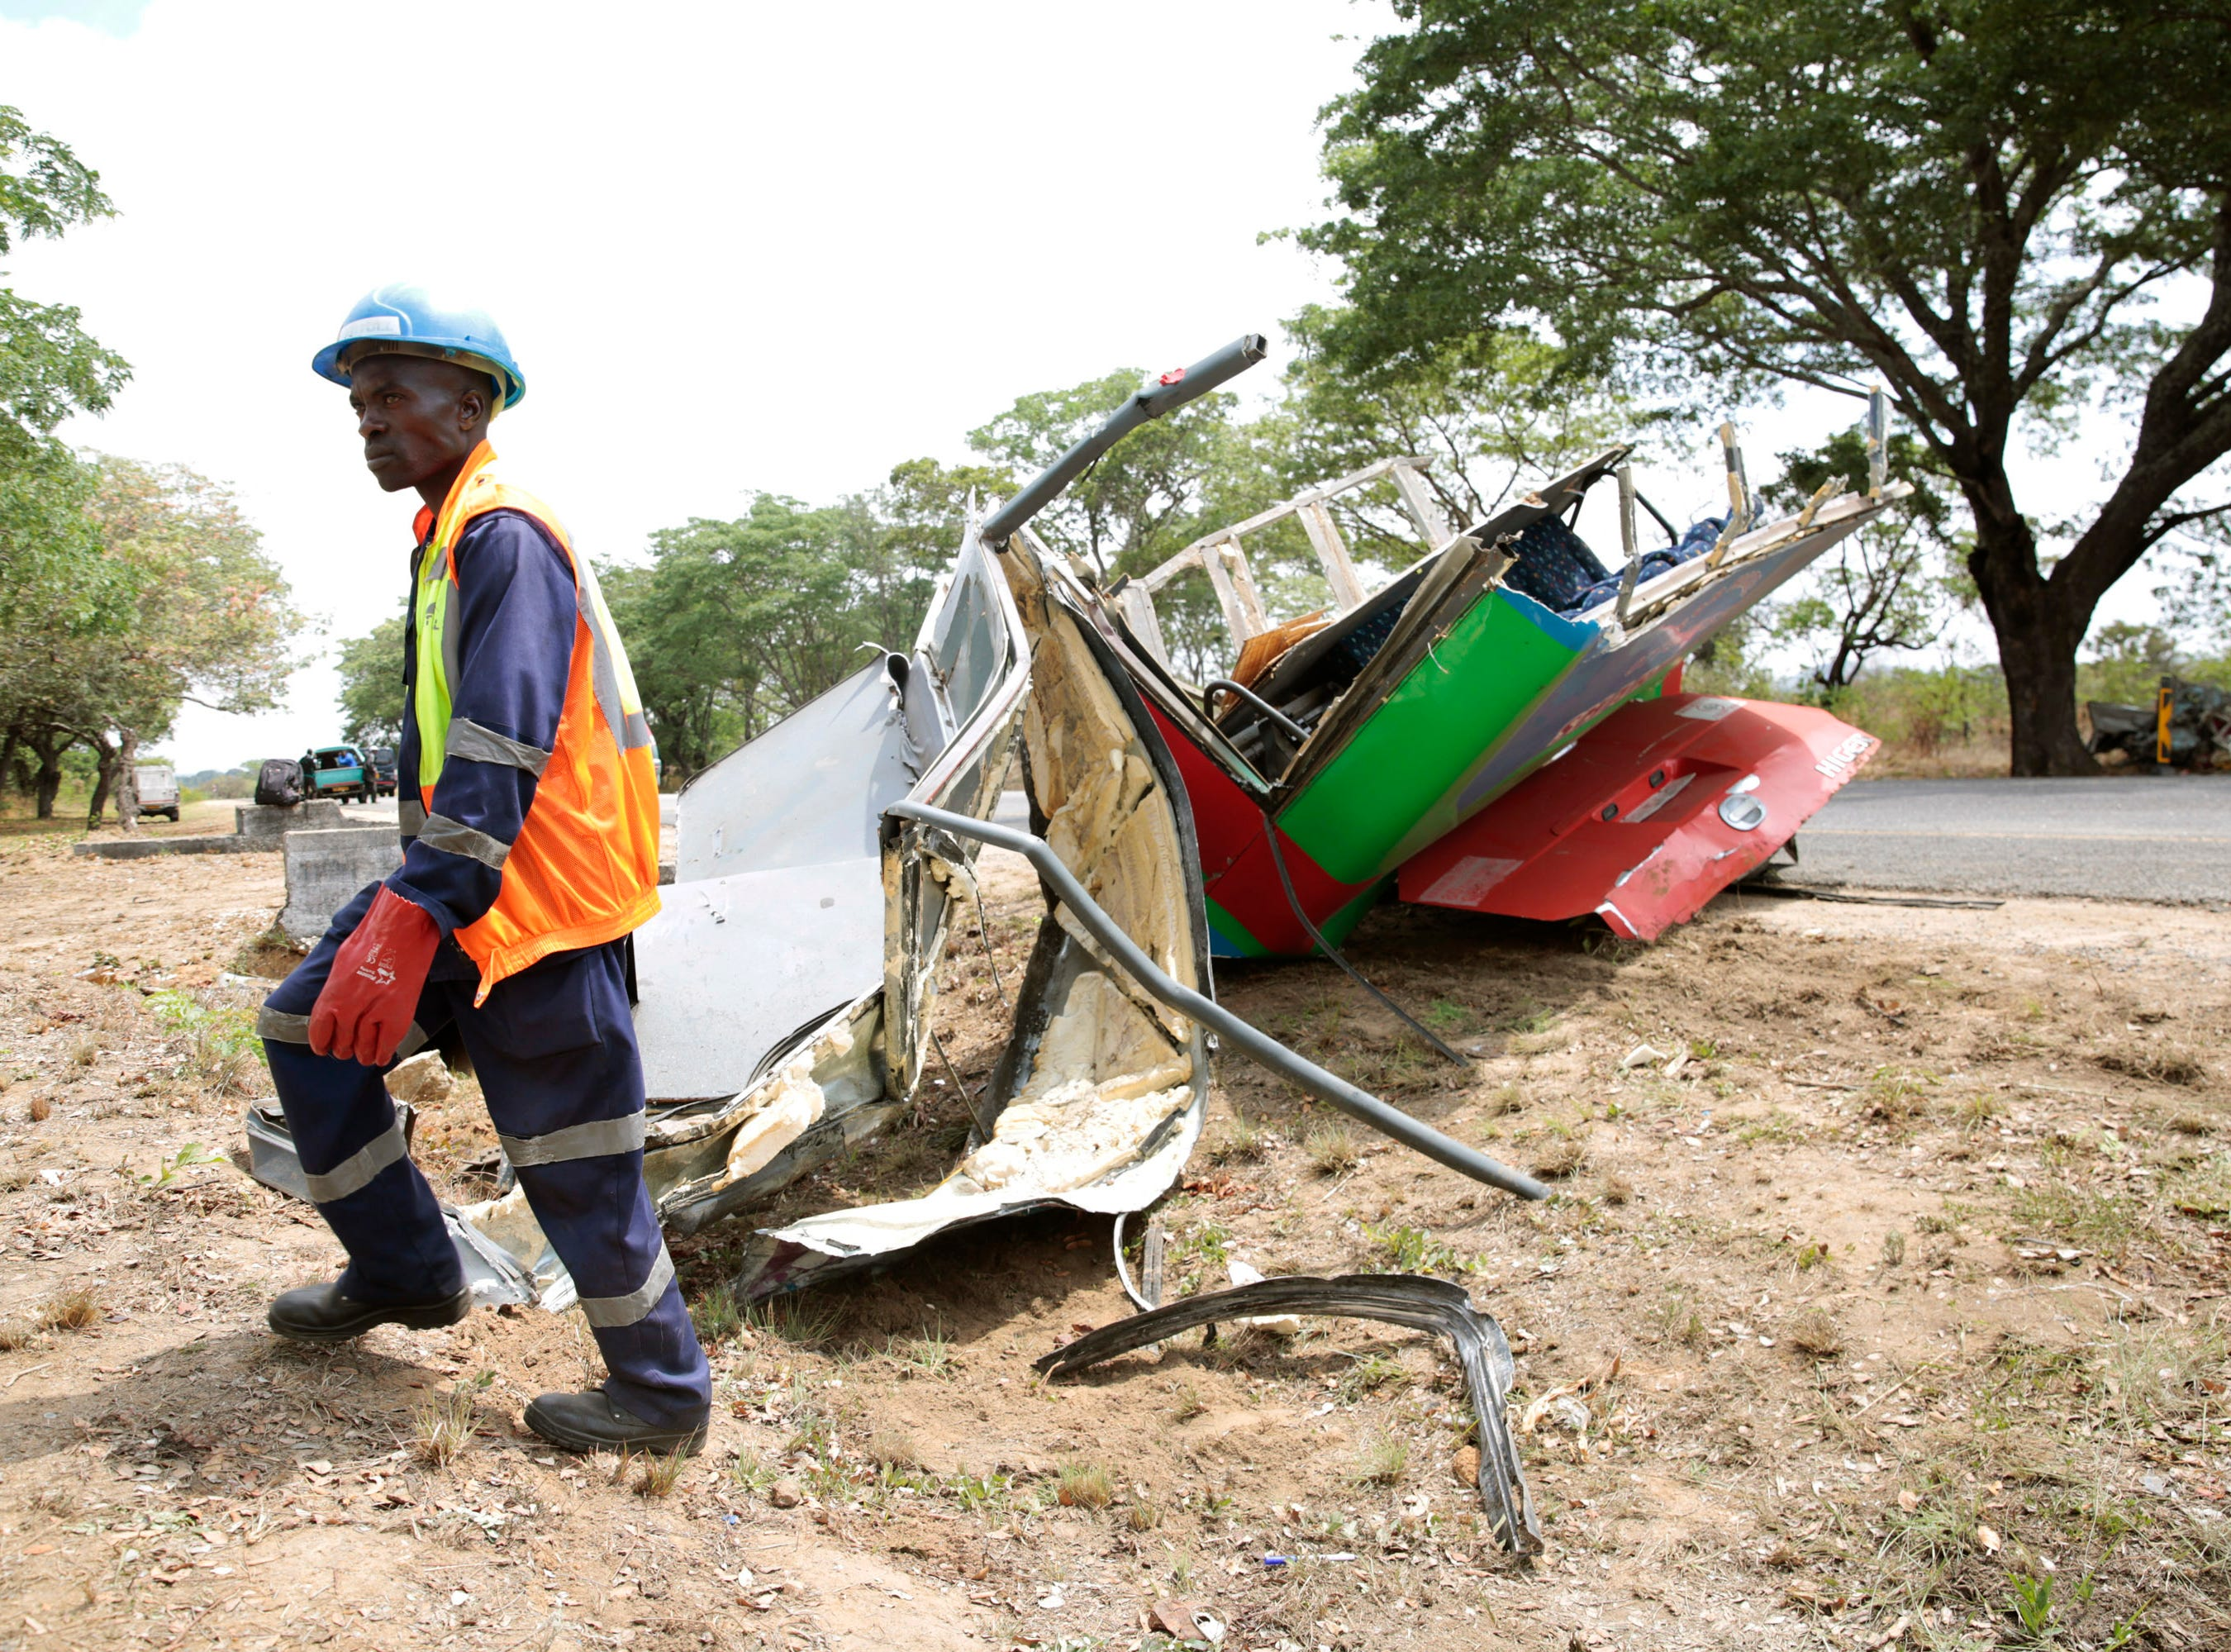 A rescue worker at the scene of a bus crash in Rusape, Zimbabwe, Thursday, Nov. 8, 2018. A head-on collision between two buses has killed 47 people, where road accidents are common due to poor roads and bad driving.